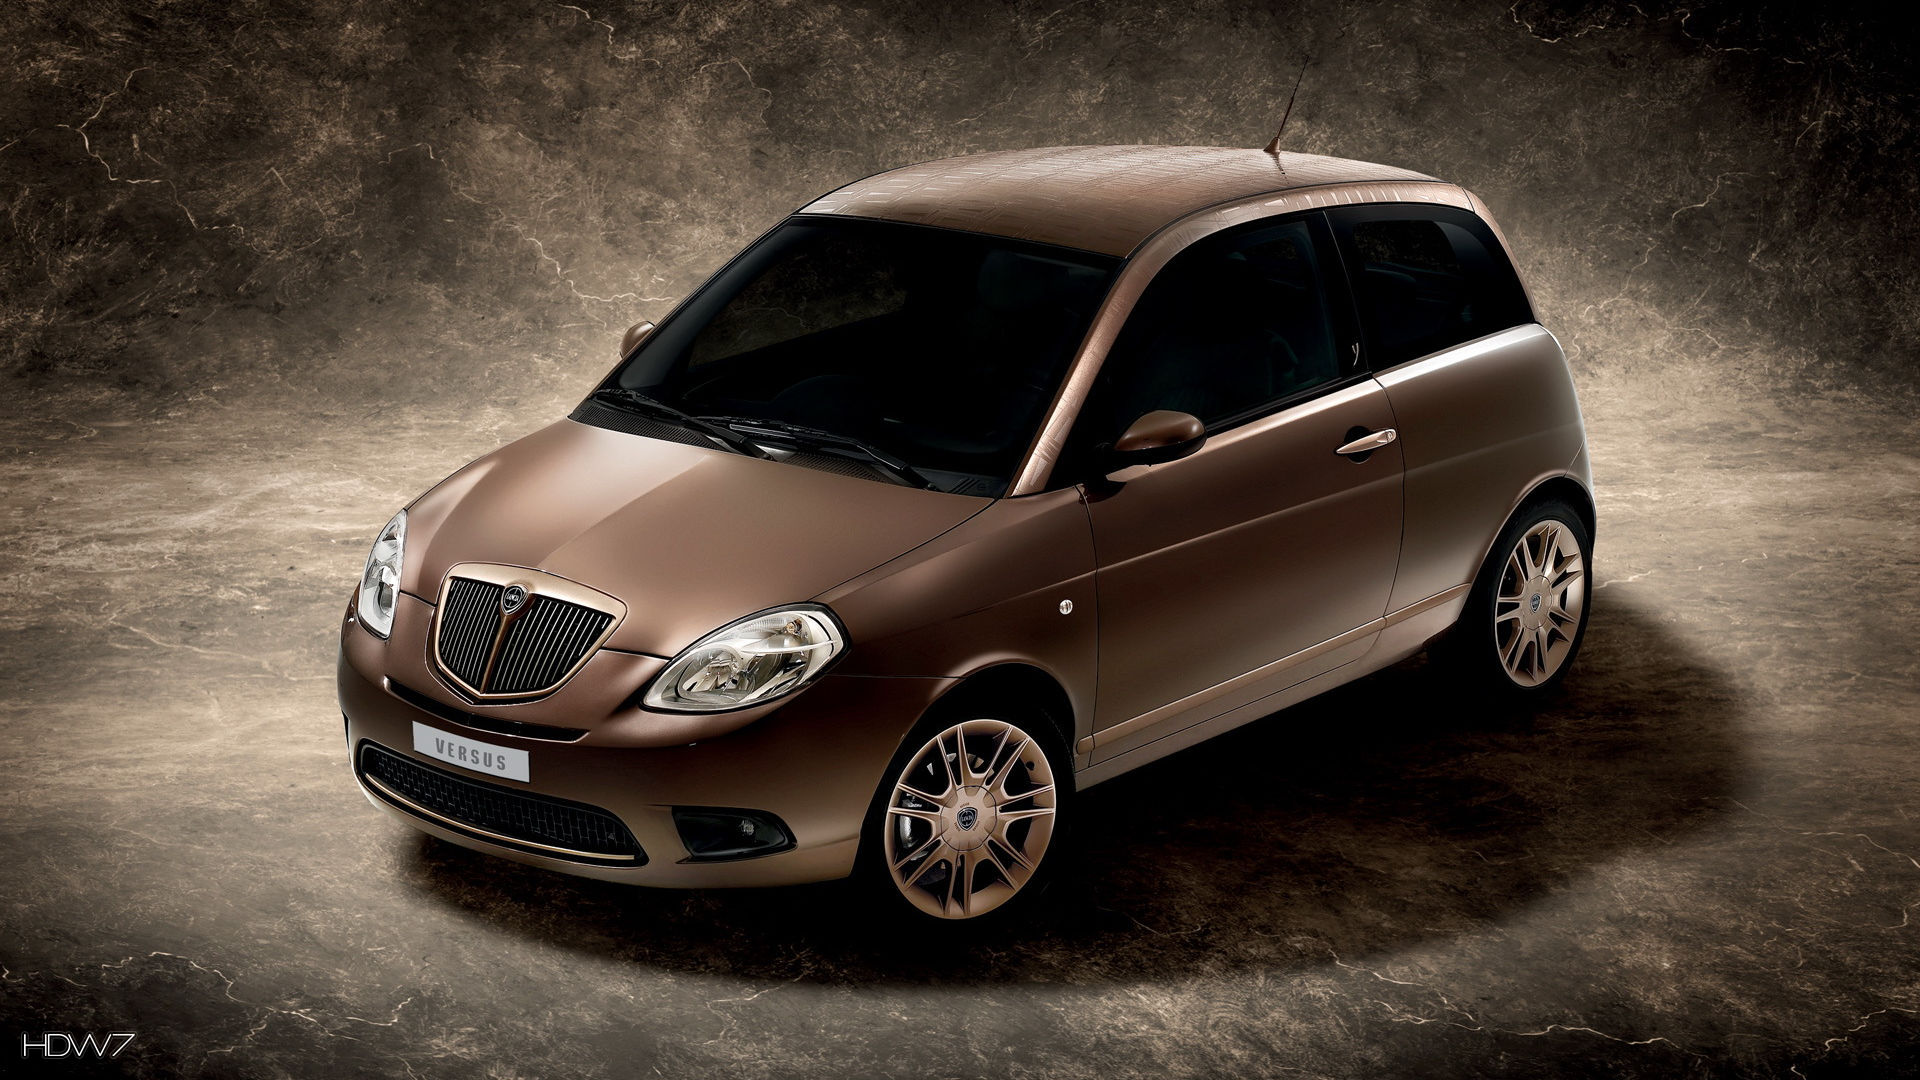 lancia ypsilon versus 2008 car hd wallpaper